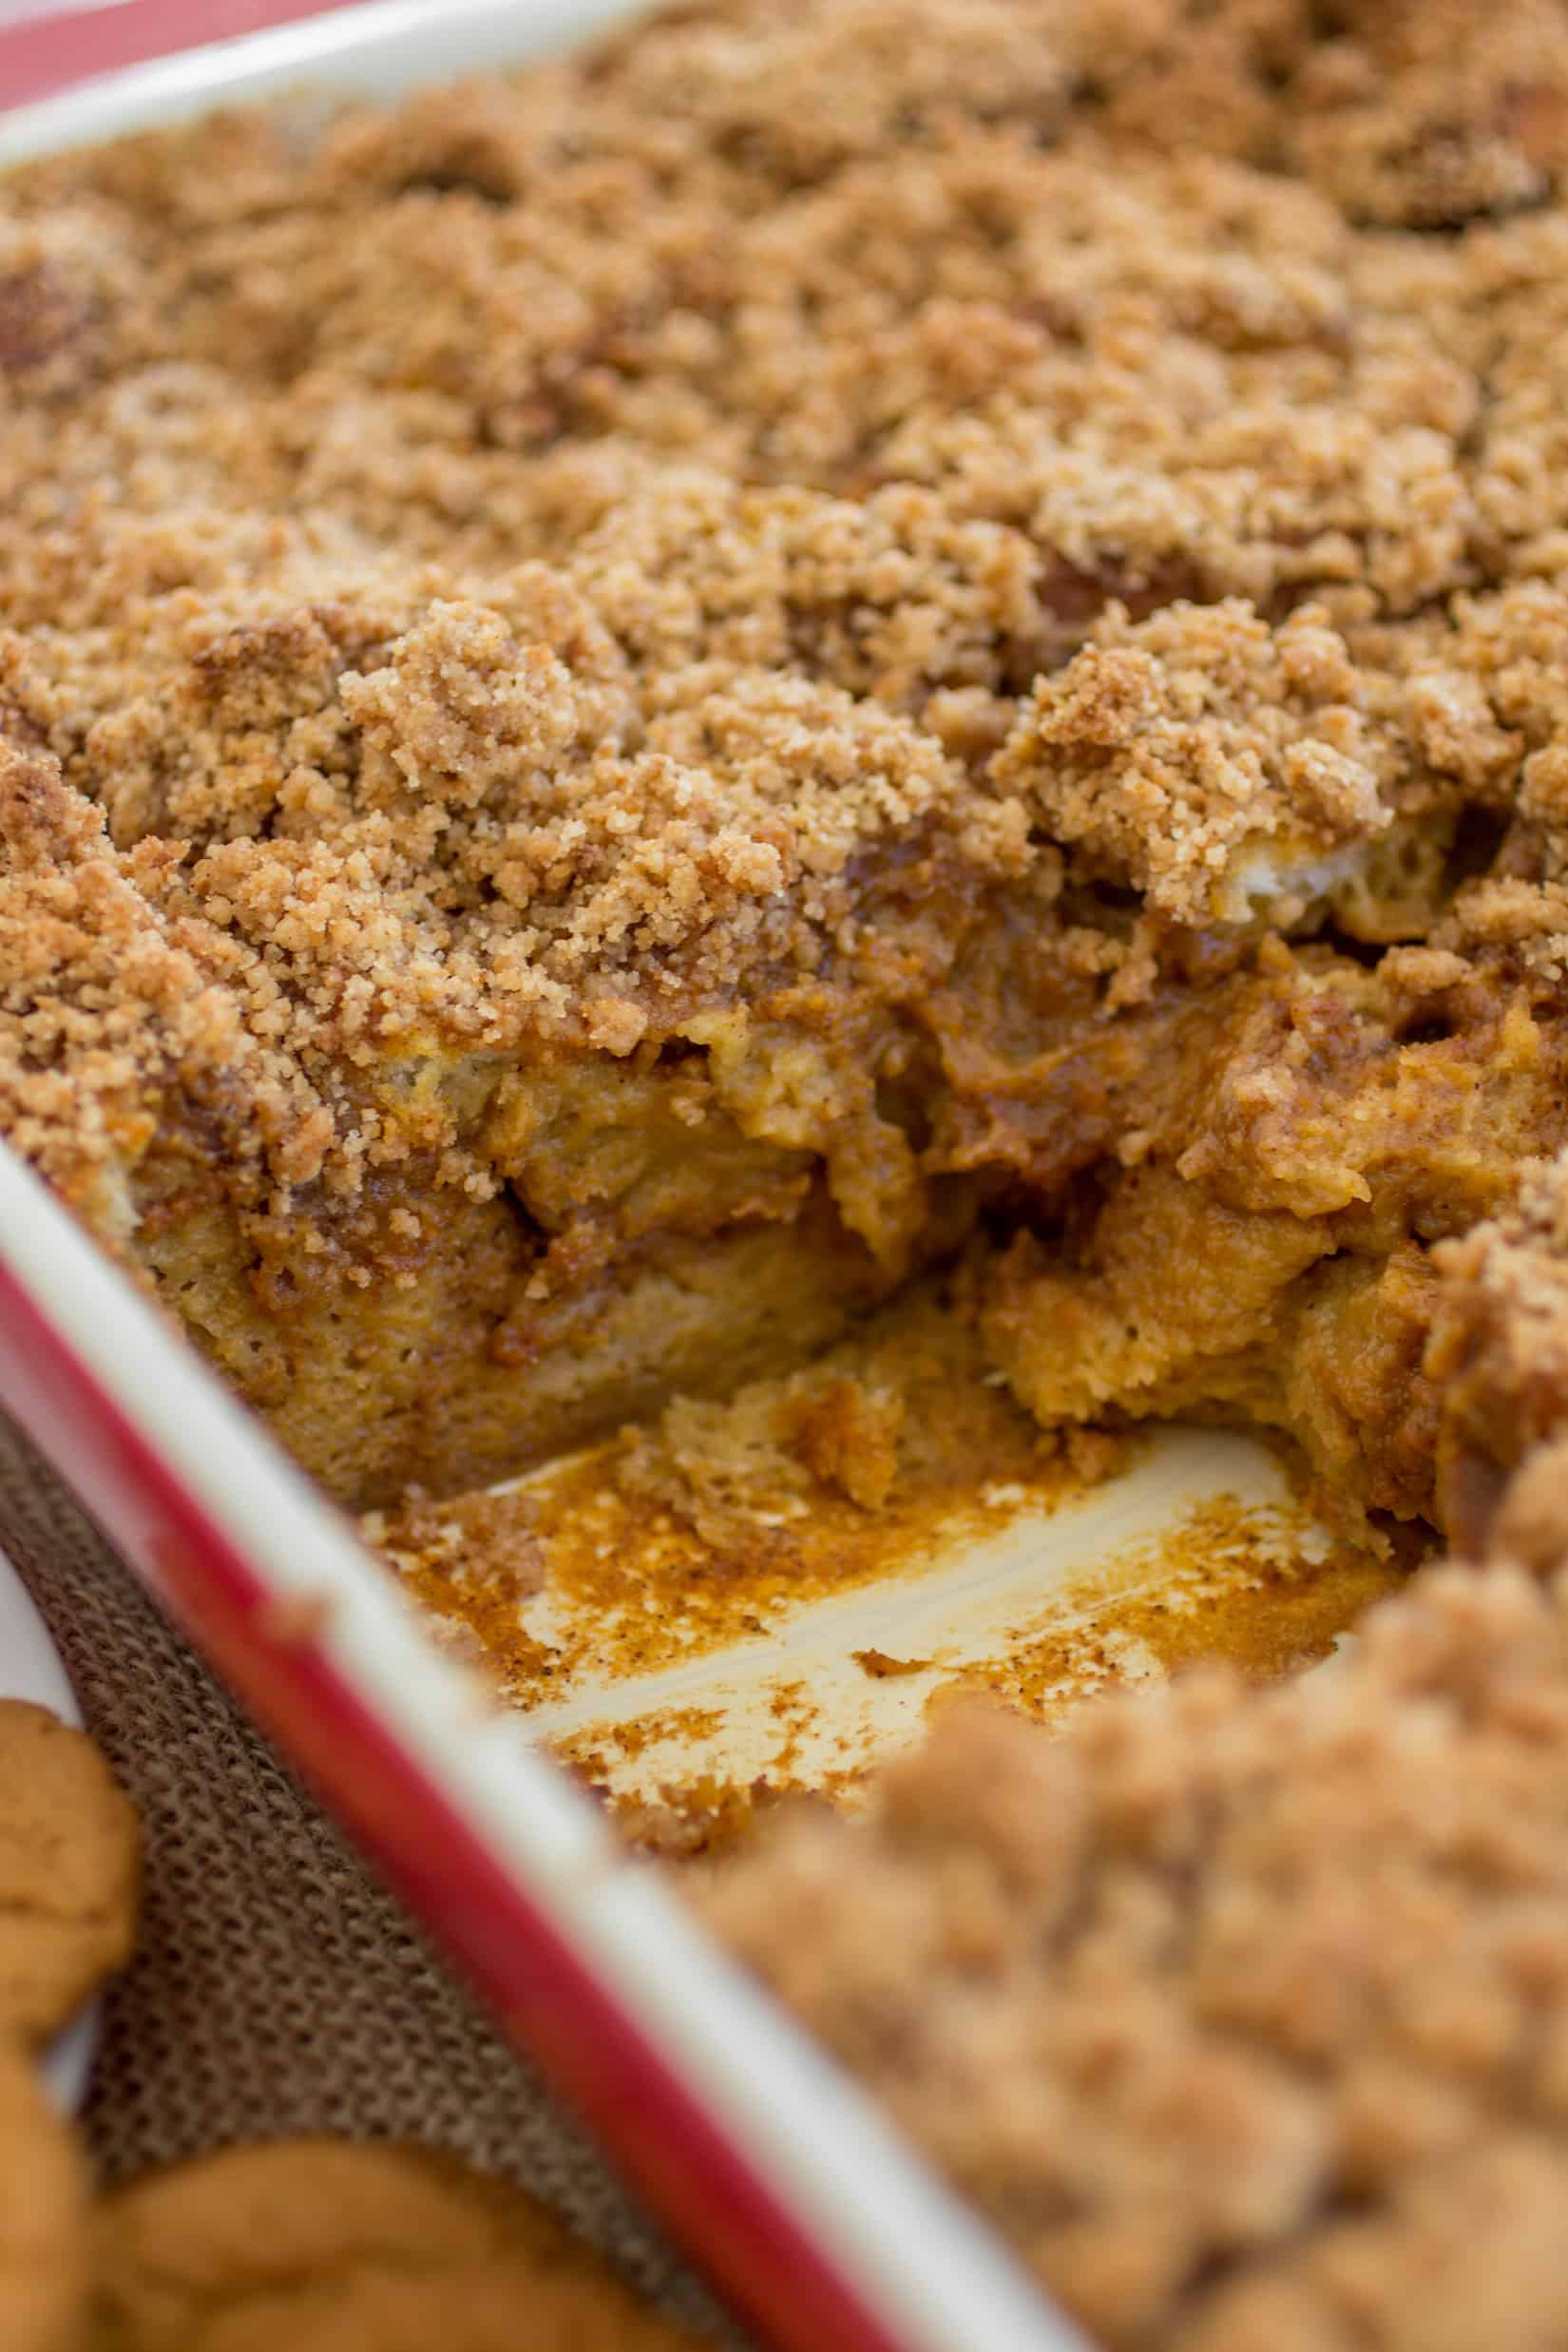 This melt-in-your-mouth bread pudding tastes like pumpkin pie but with an added spiced flair from the gingersnaps baked inside in the sweet and spicy crumble on top! - Sprinkle Some Sugar